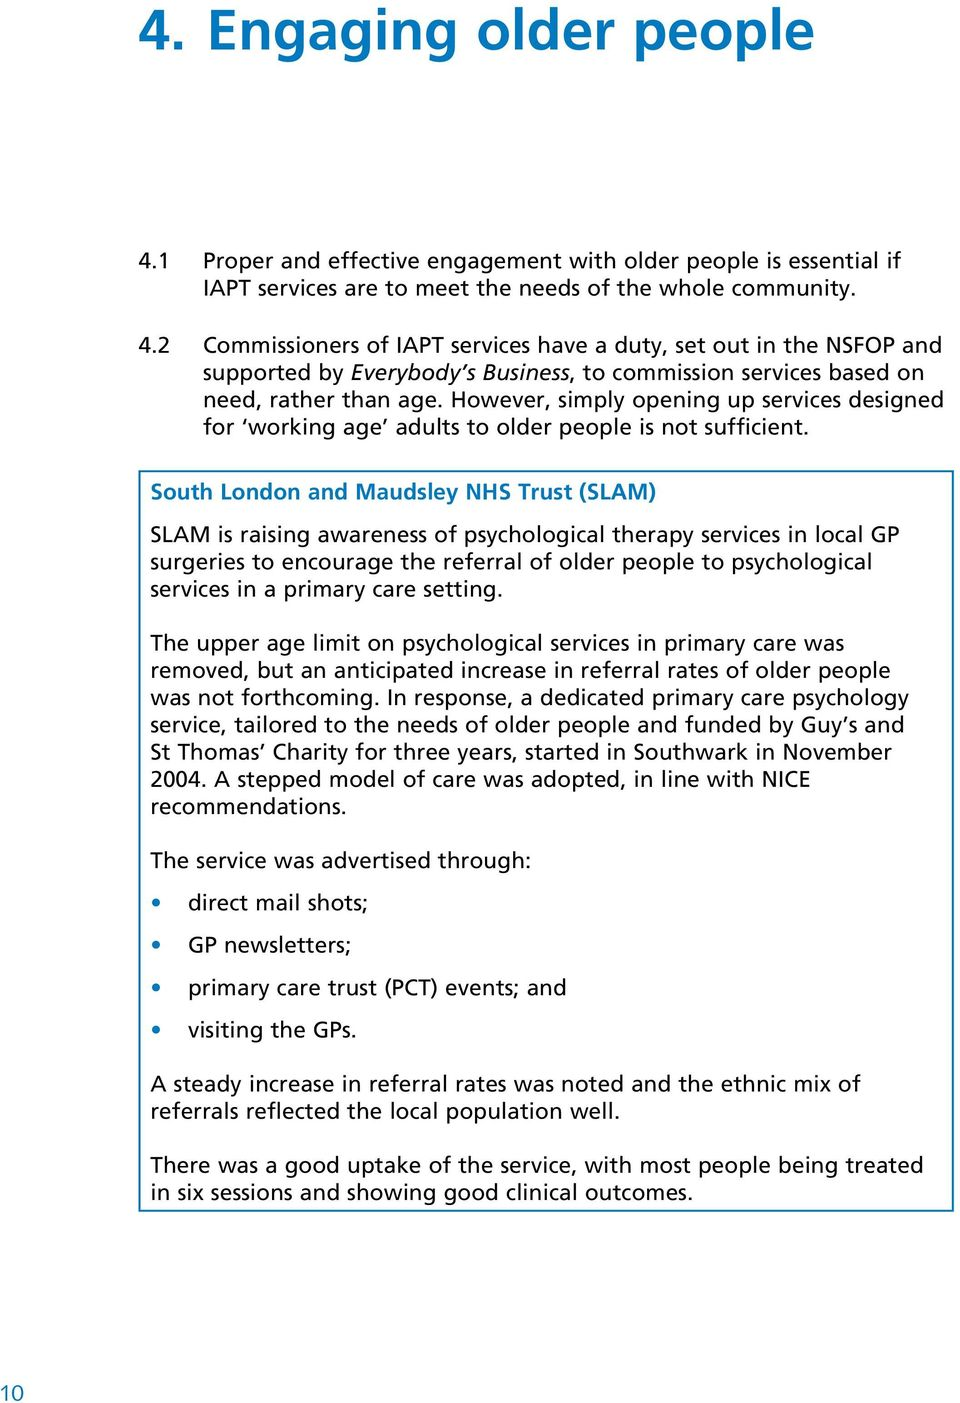 South London and Maudsley NHS Trust (SLAM) SLAM is raising awareness of psychological therapy services in local GP surgeries to encourage the referral of older people to psychological services in a